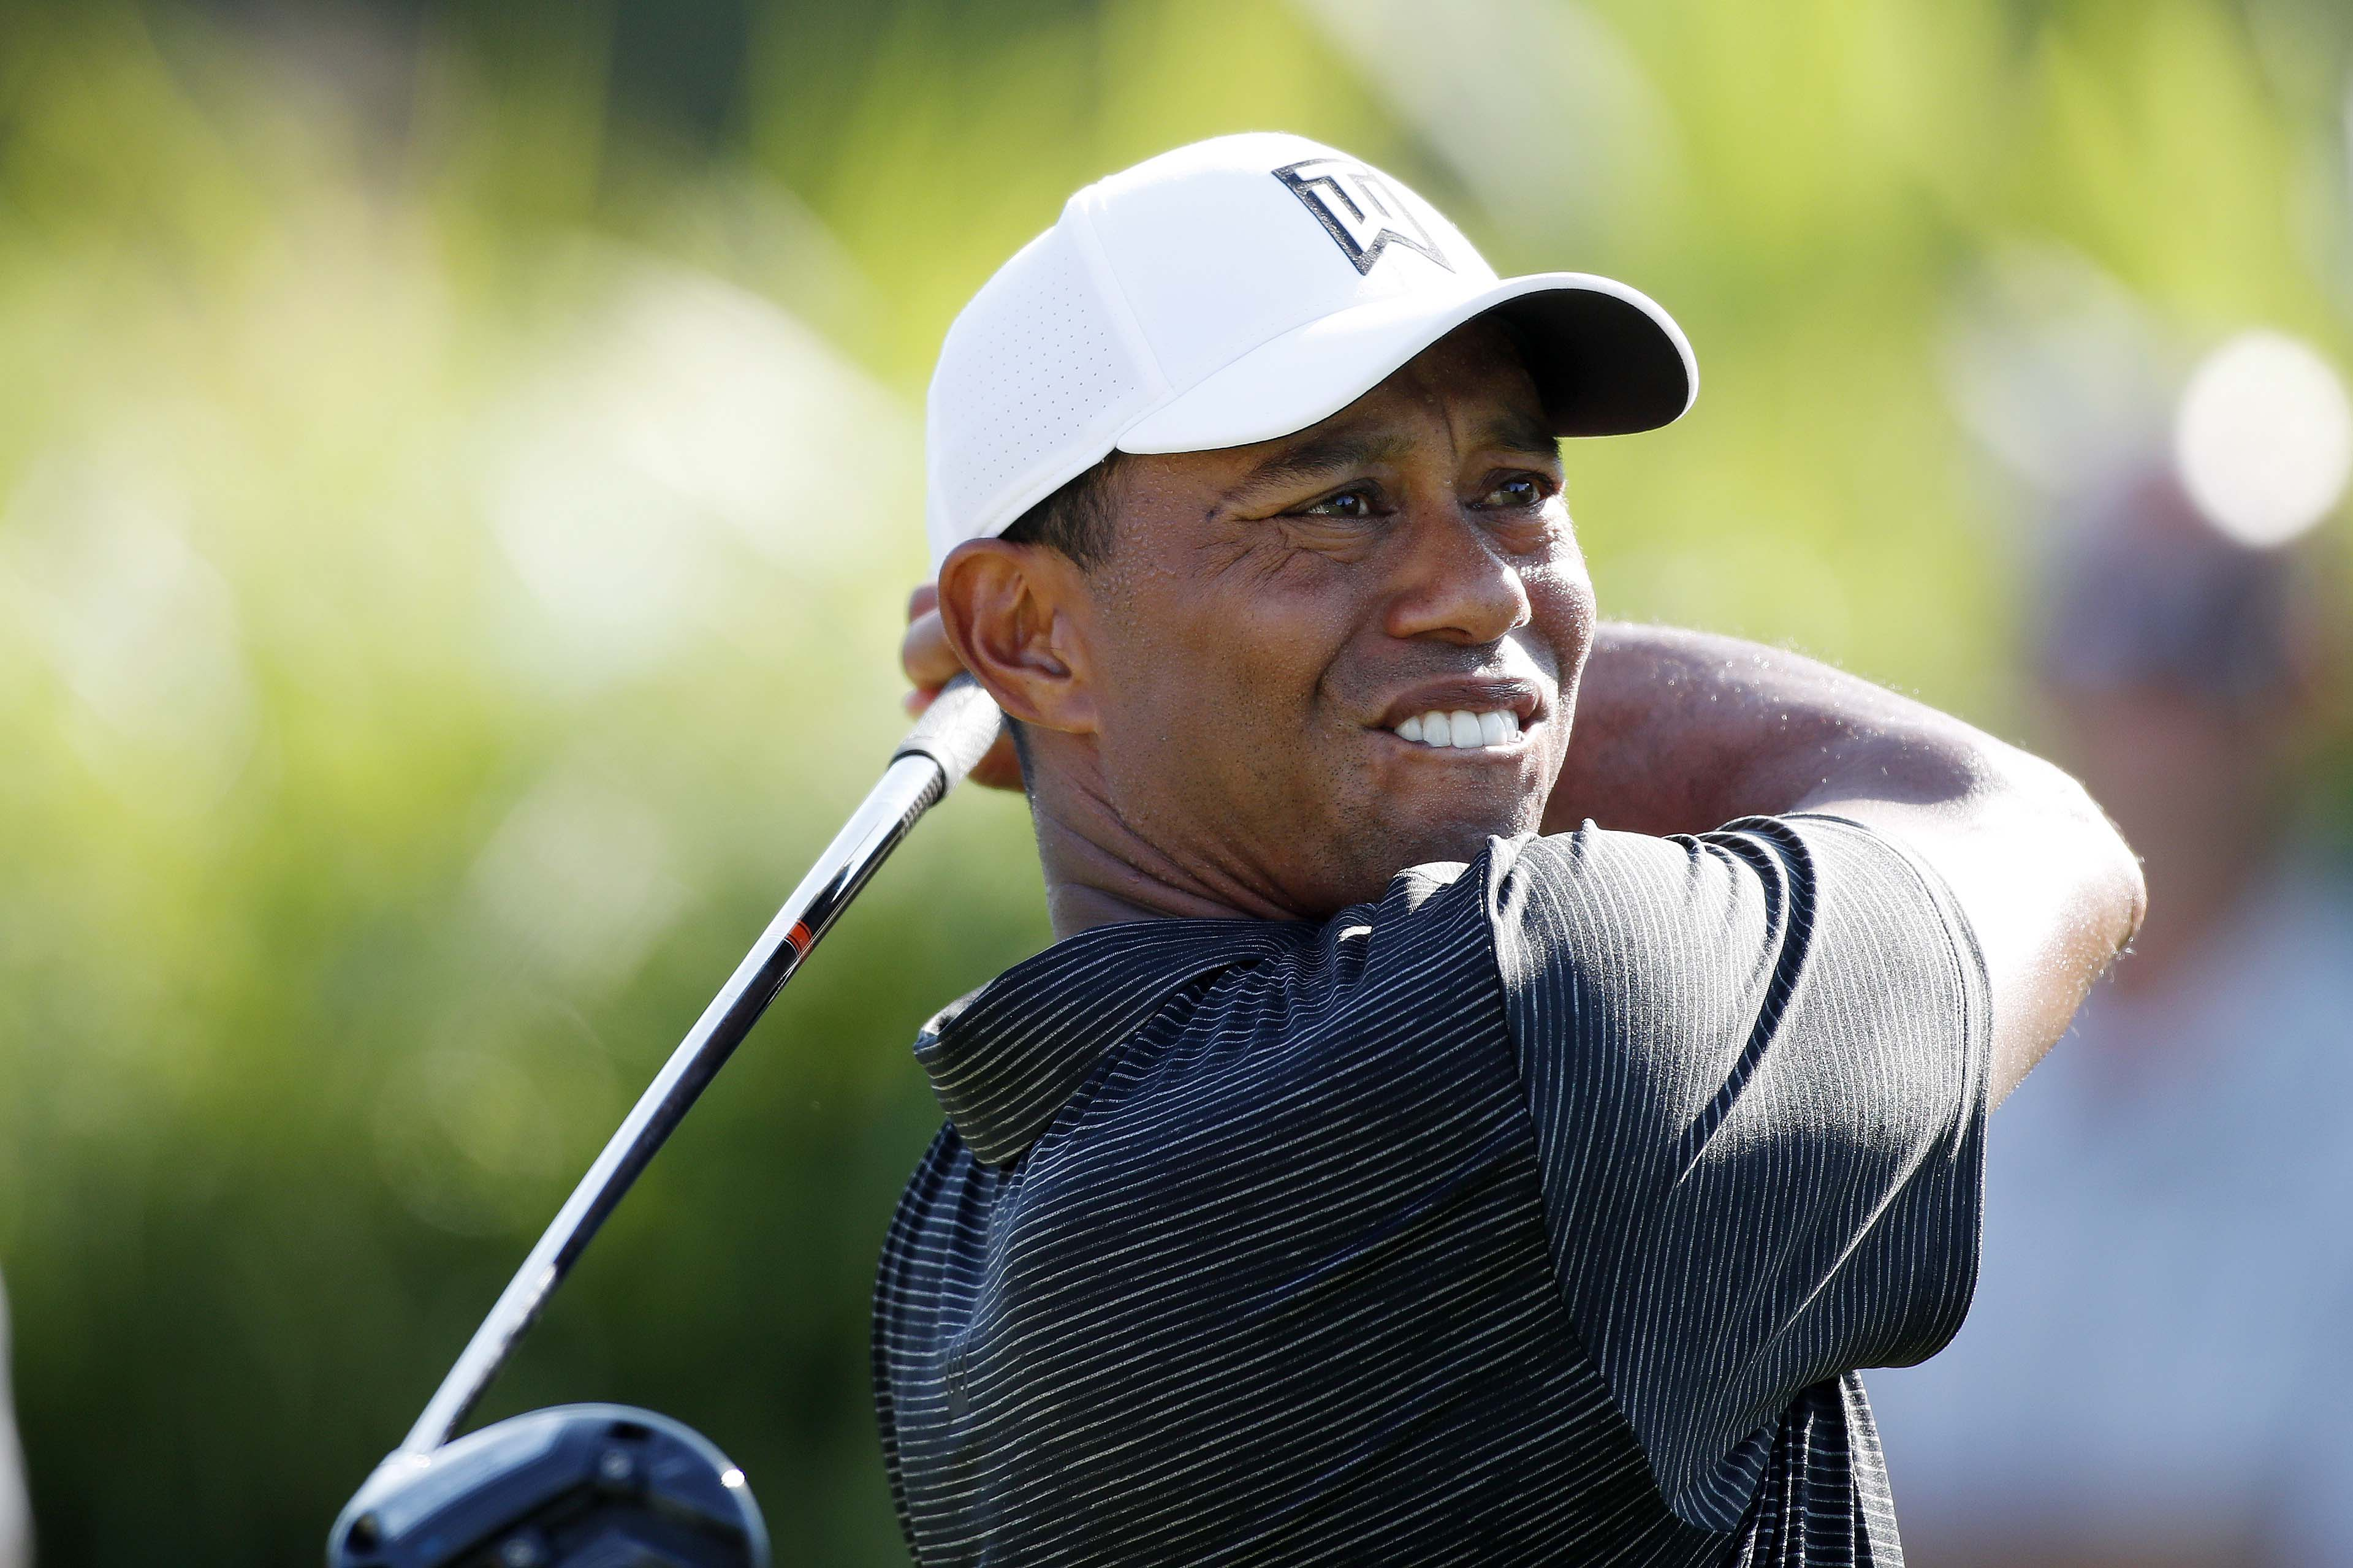 Golf: Woods and McIlroy toil but finish within striking distance